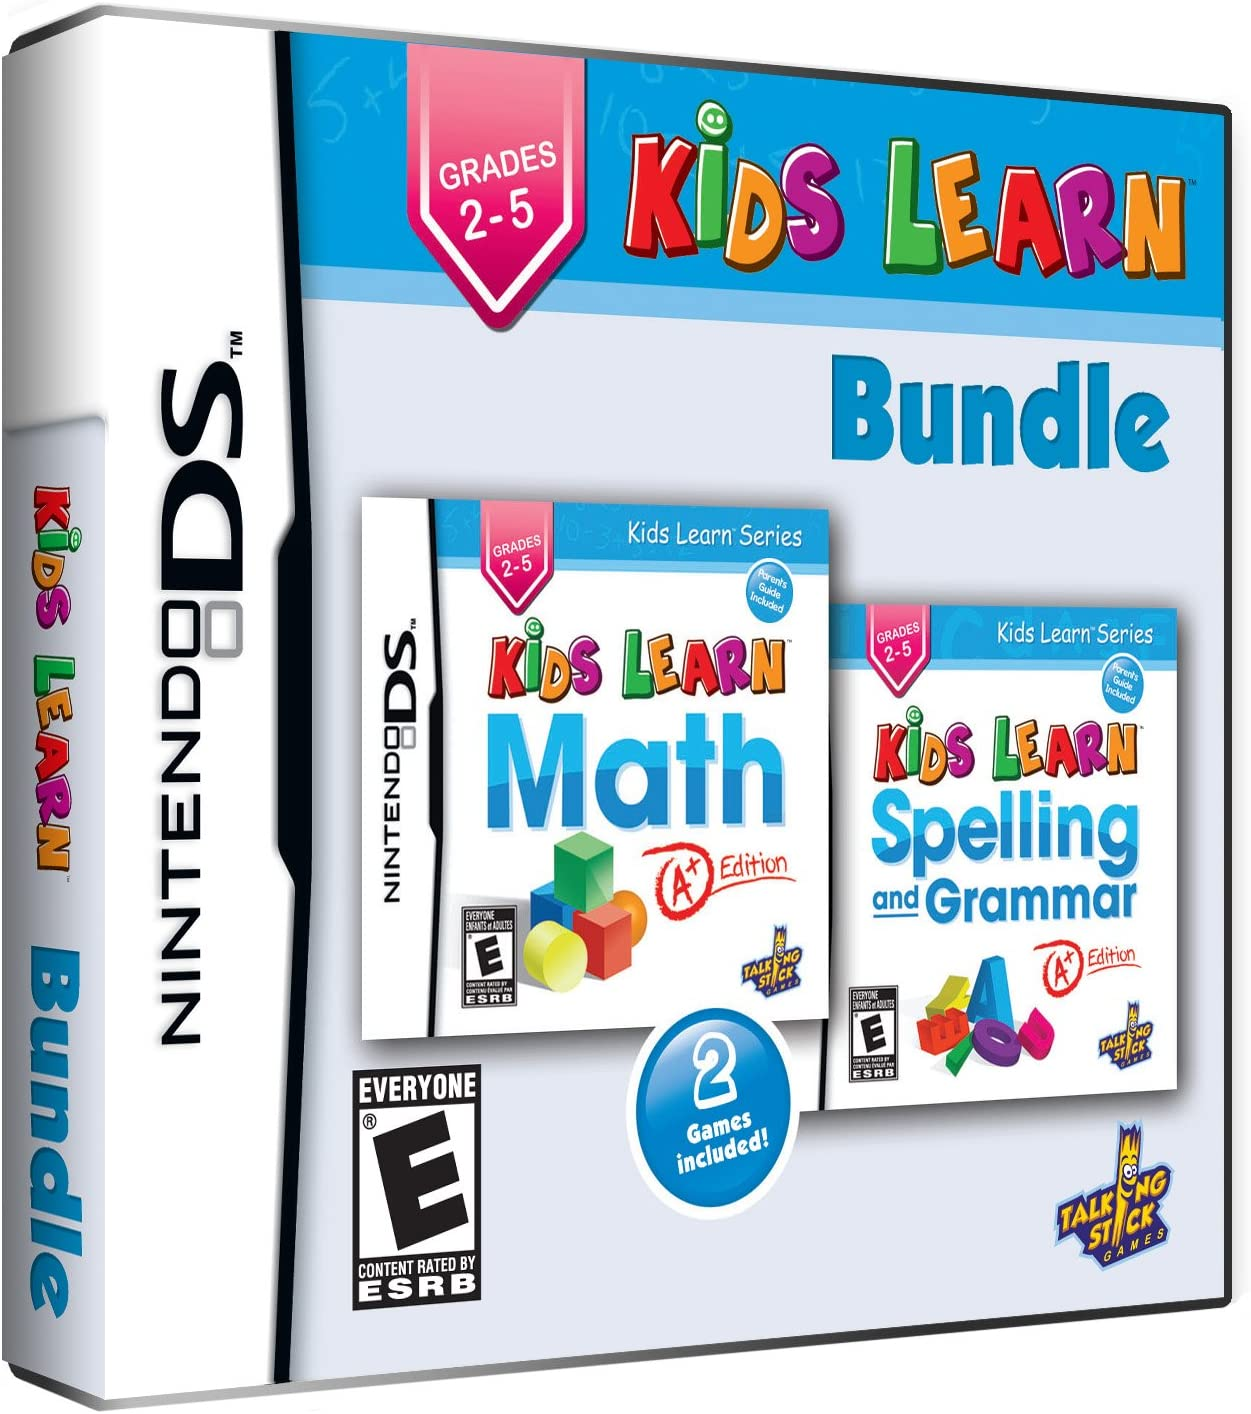 Amazon.com: Kids Learn Bundle: Math and Spelling - Grades 2 to 5 ...